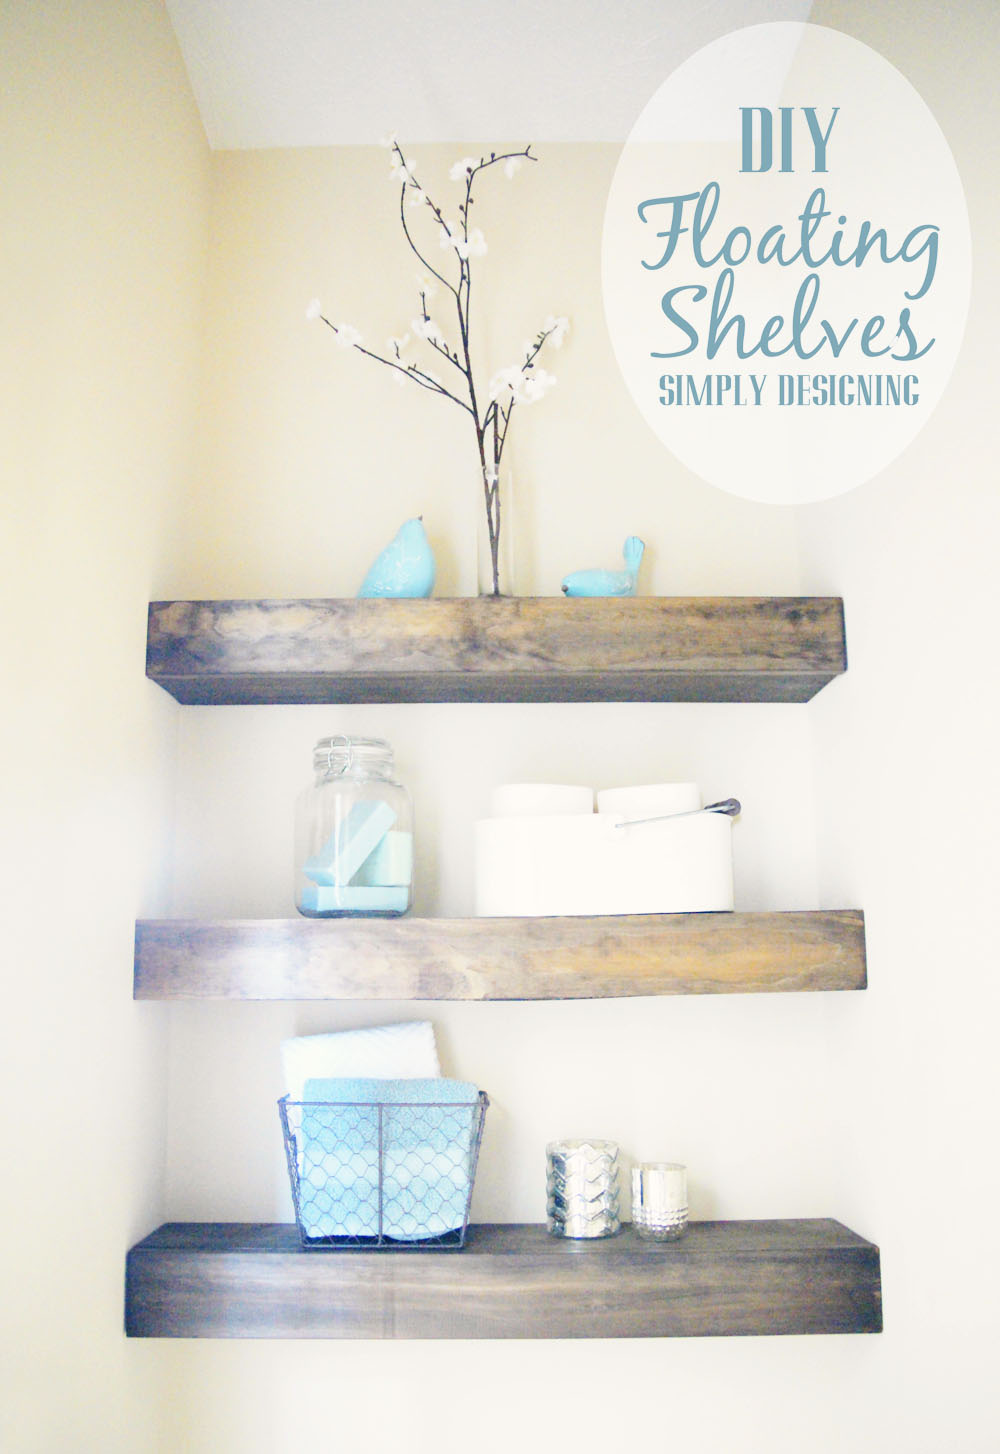 diy floating shelves how measure cut and install building wall are really easy make they the perfect kitchen rack interior bookshelf magnetic gun safe shelf single with hooks